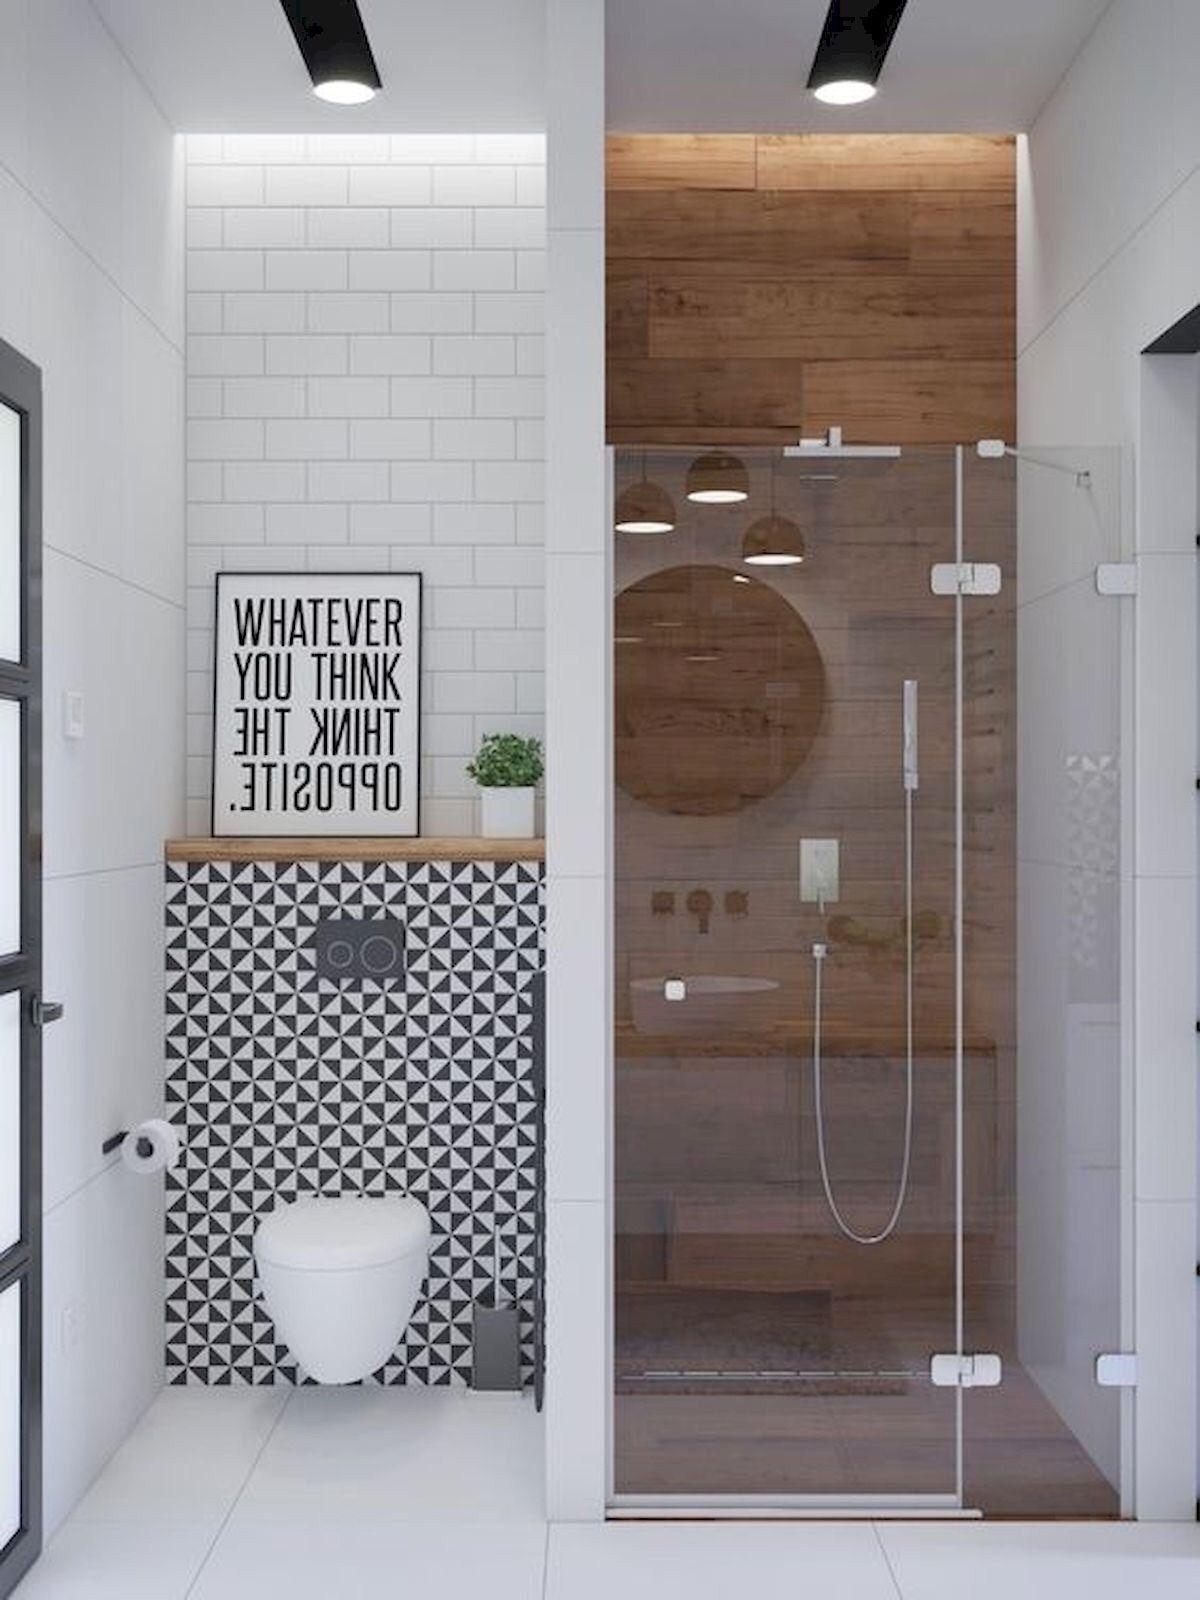 14 Stunning Design Ideas For Small Bathrooms Small Bathroom